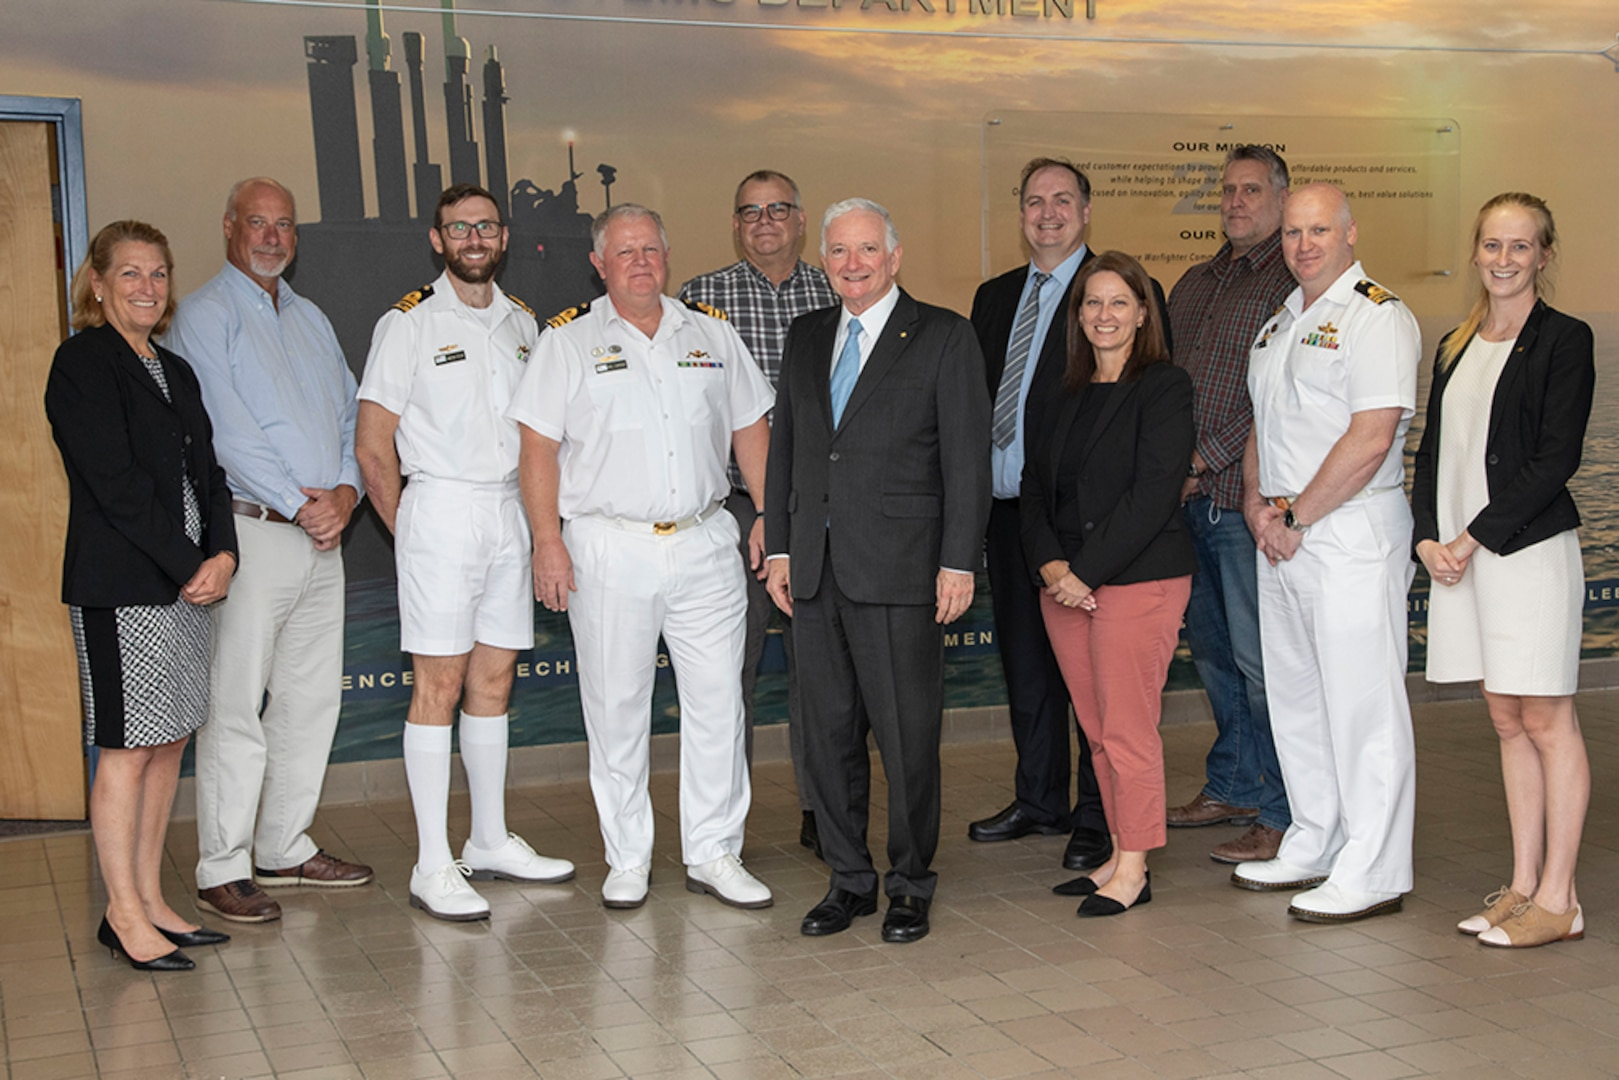 NUWC Division Newport partnership with Royal Australian Navy highlighted during tour by consul general